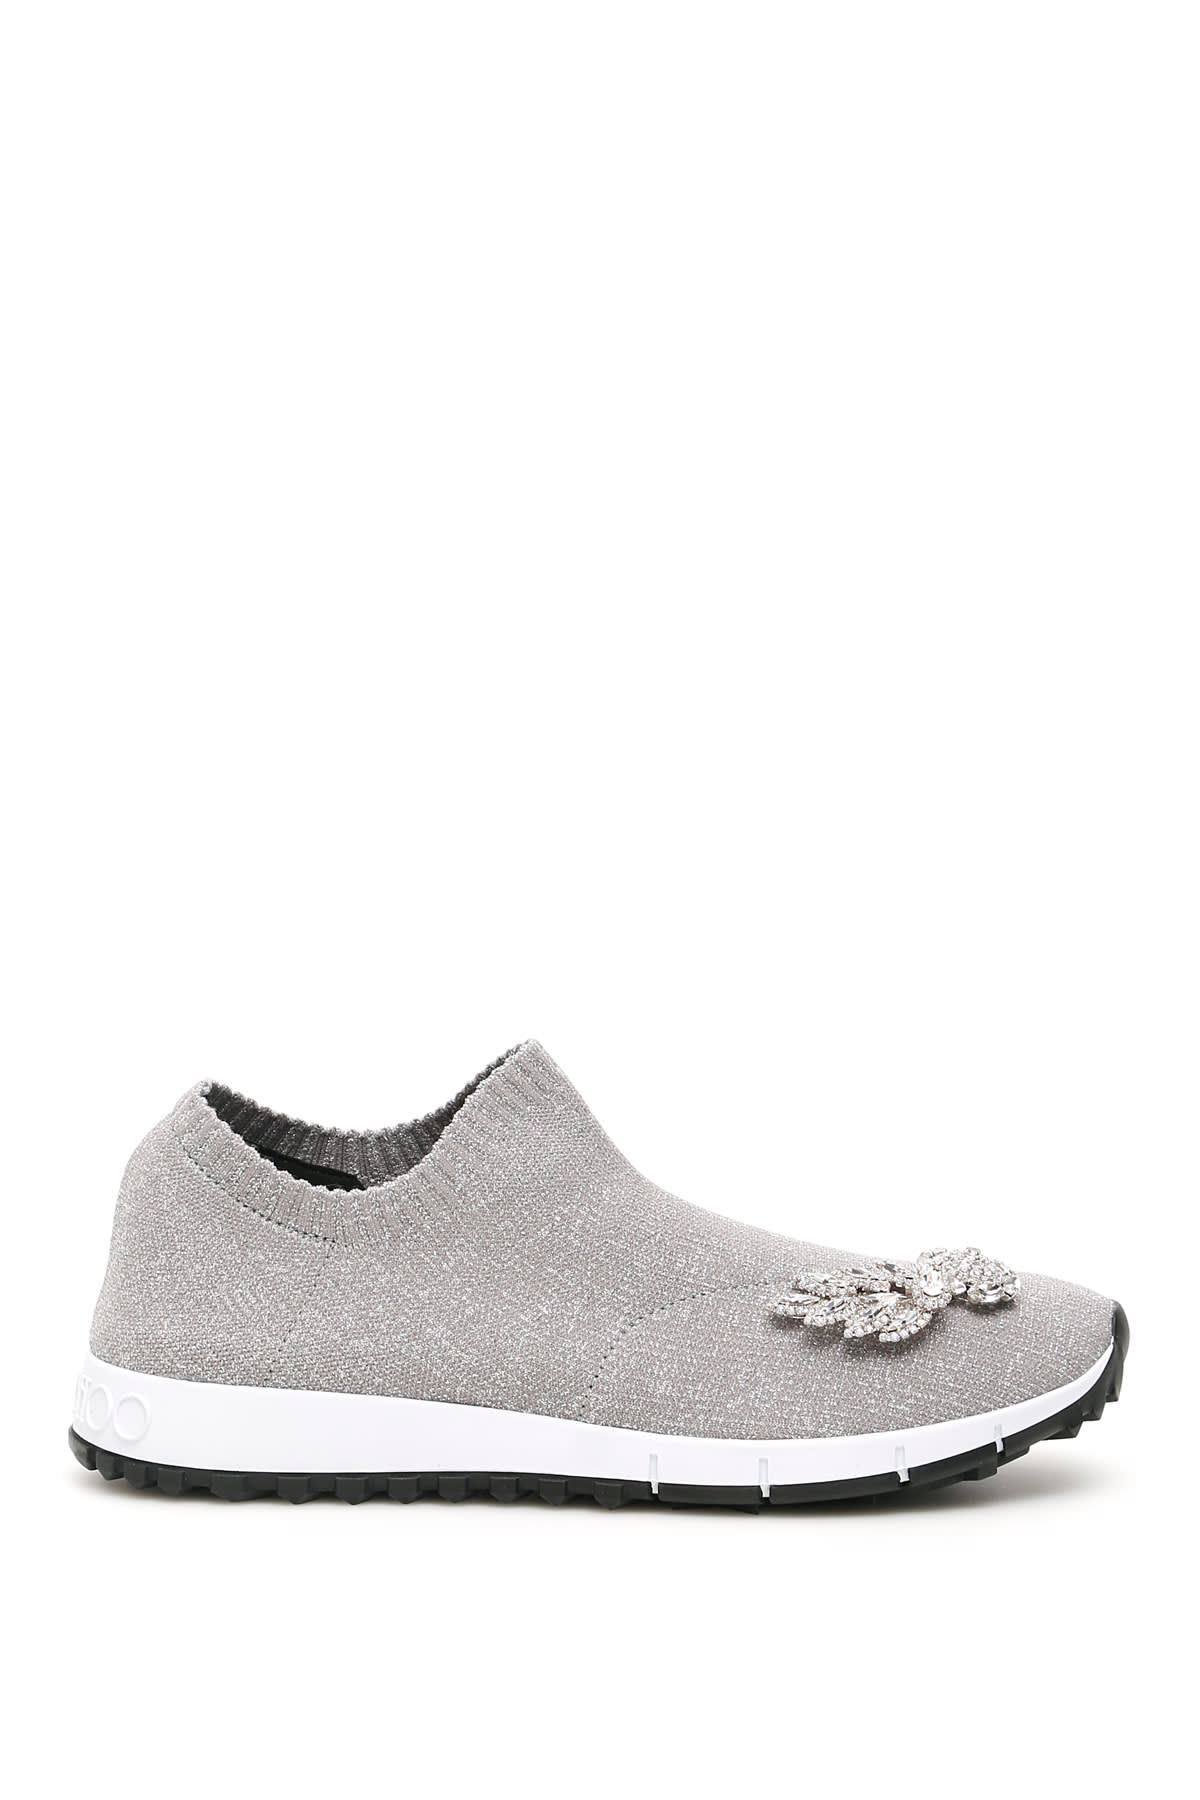 Jimmy Choo Crystal Wings Verona Sock Sneakers